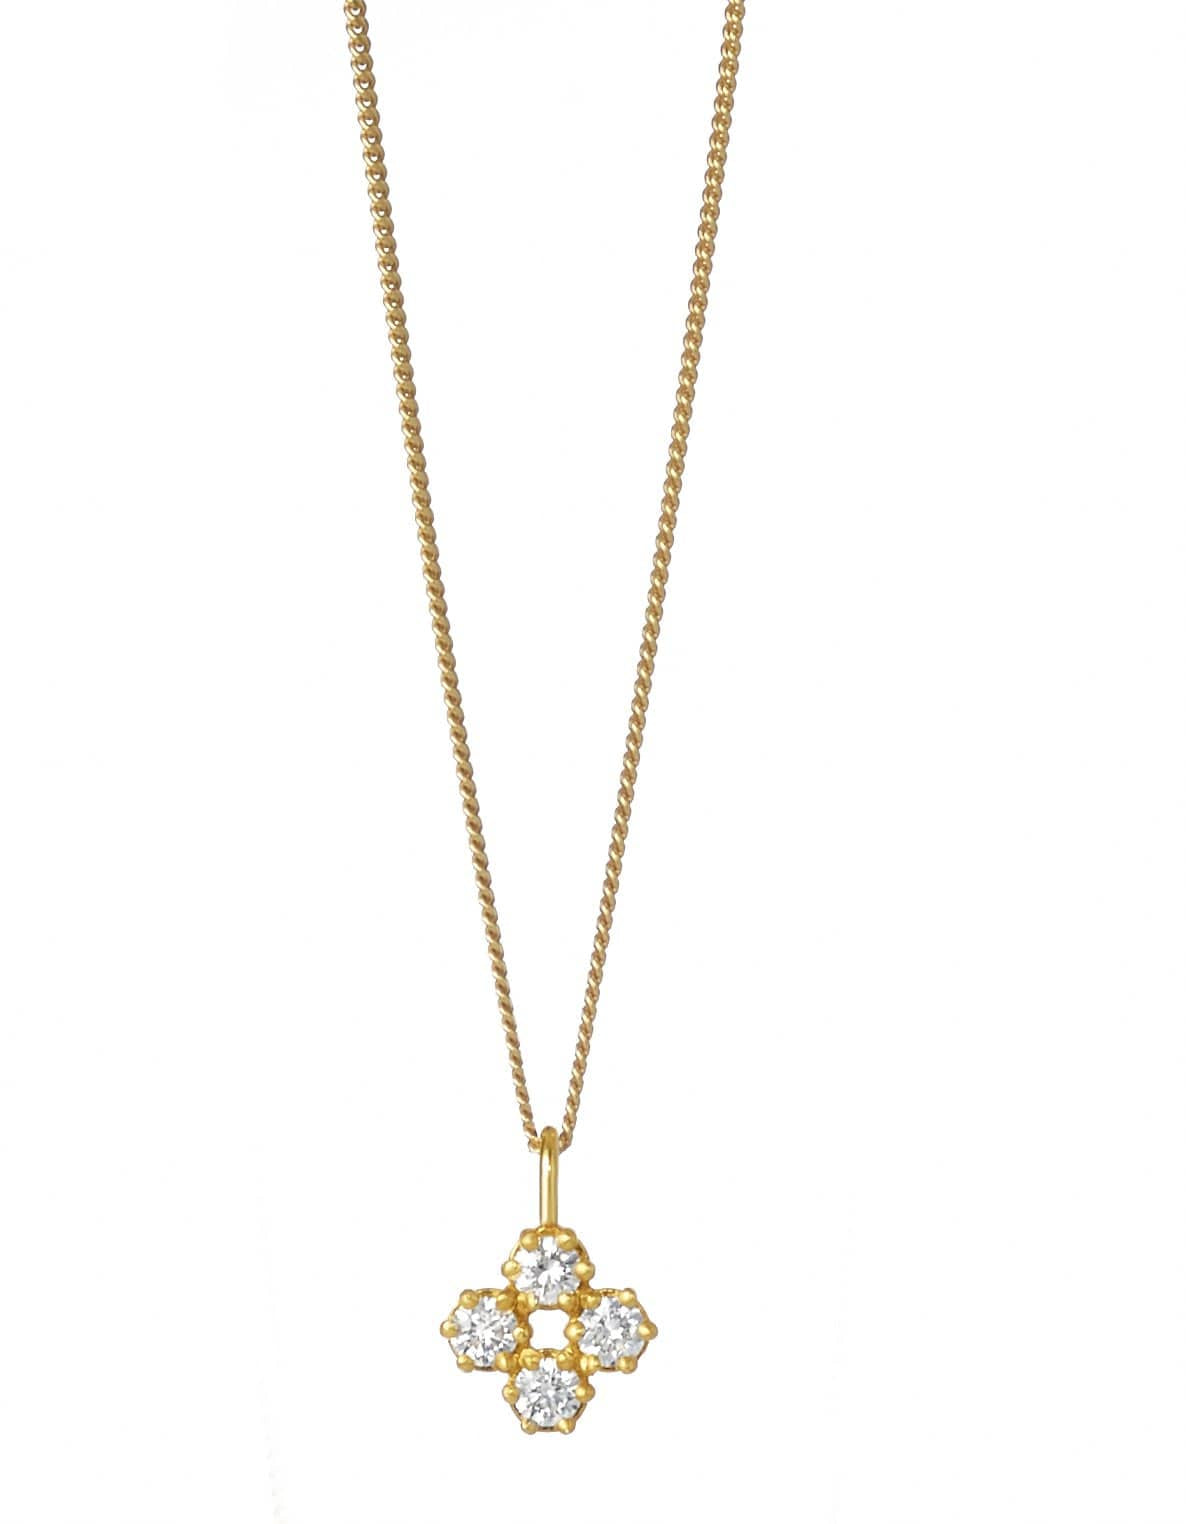 Four Diamond Charm Necklace